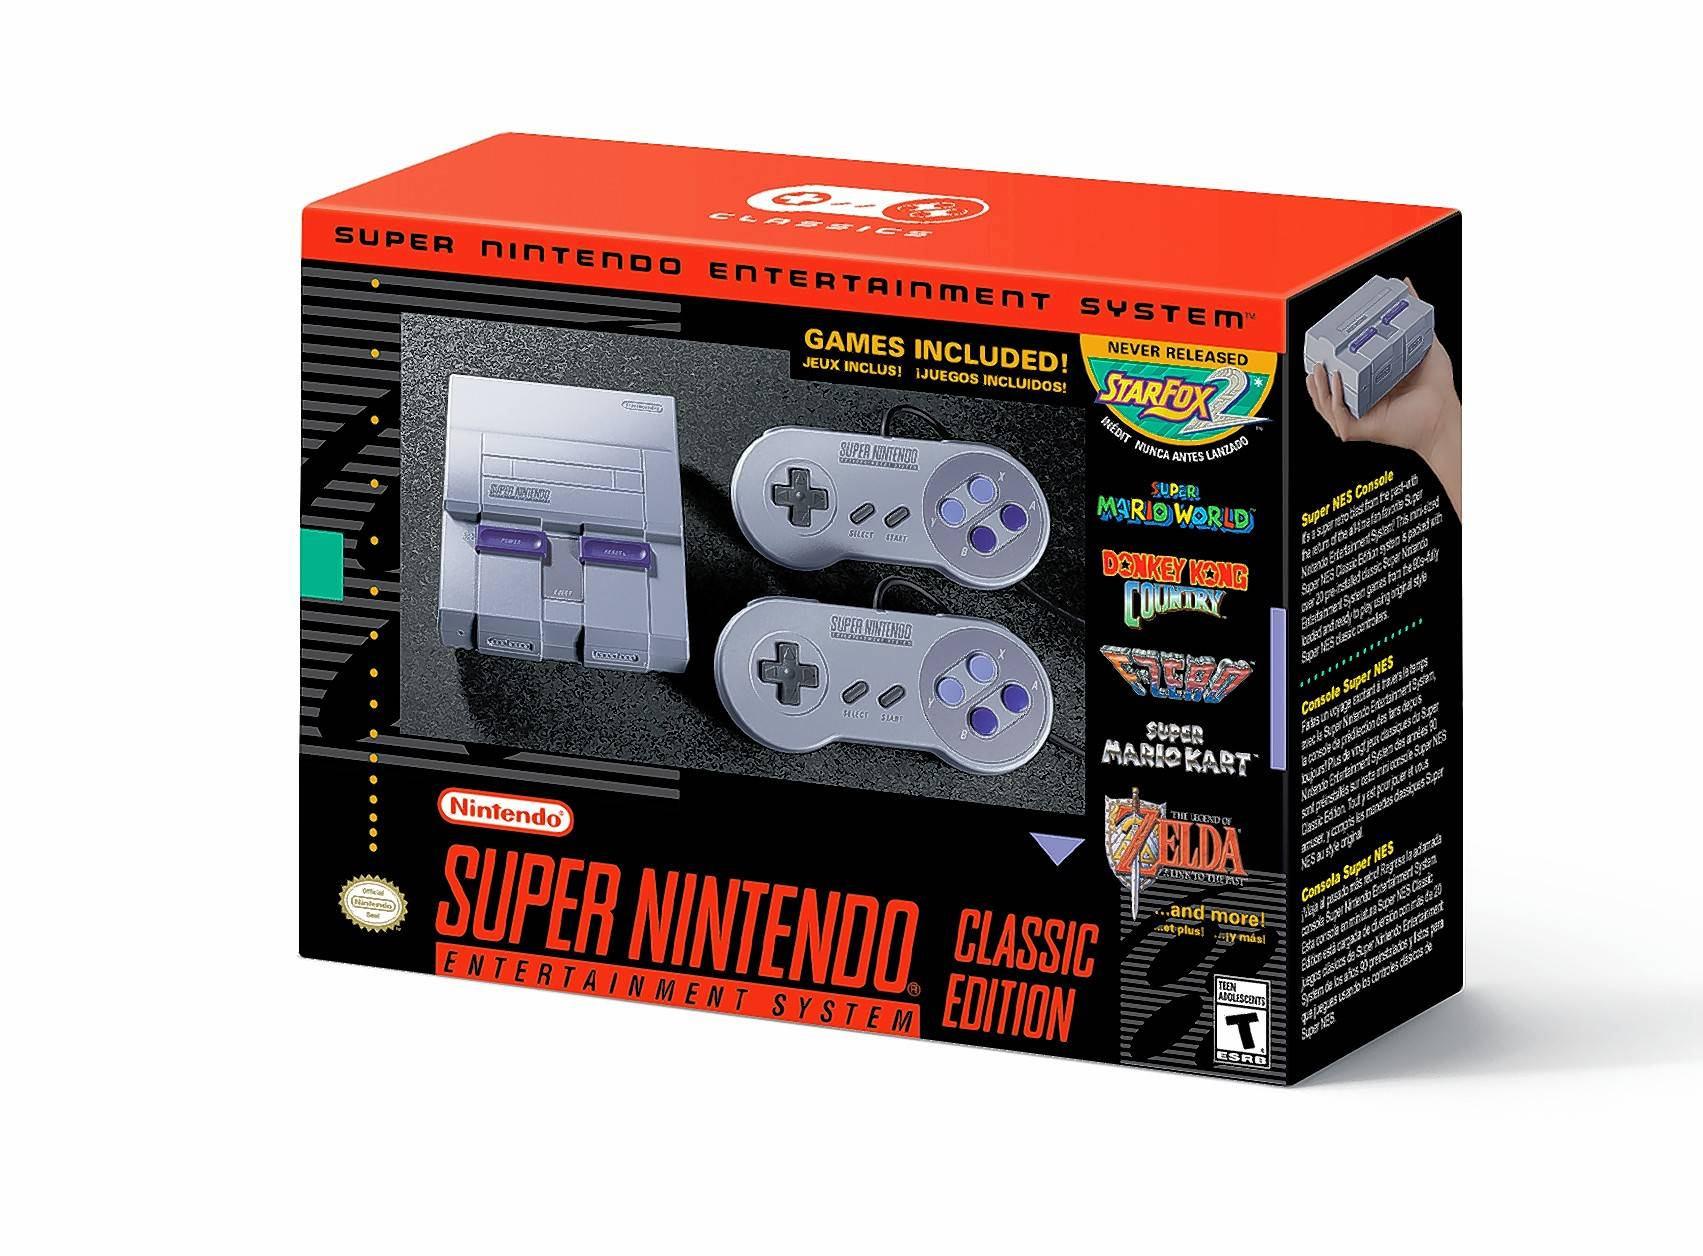 On Sept. 29 Nintendo launches the SNES Classic, a limited-release mini-version of the Super Nintendo Entertainment System first released in the United States in 1991.